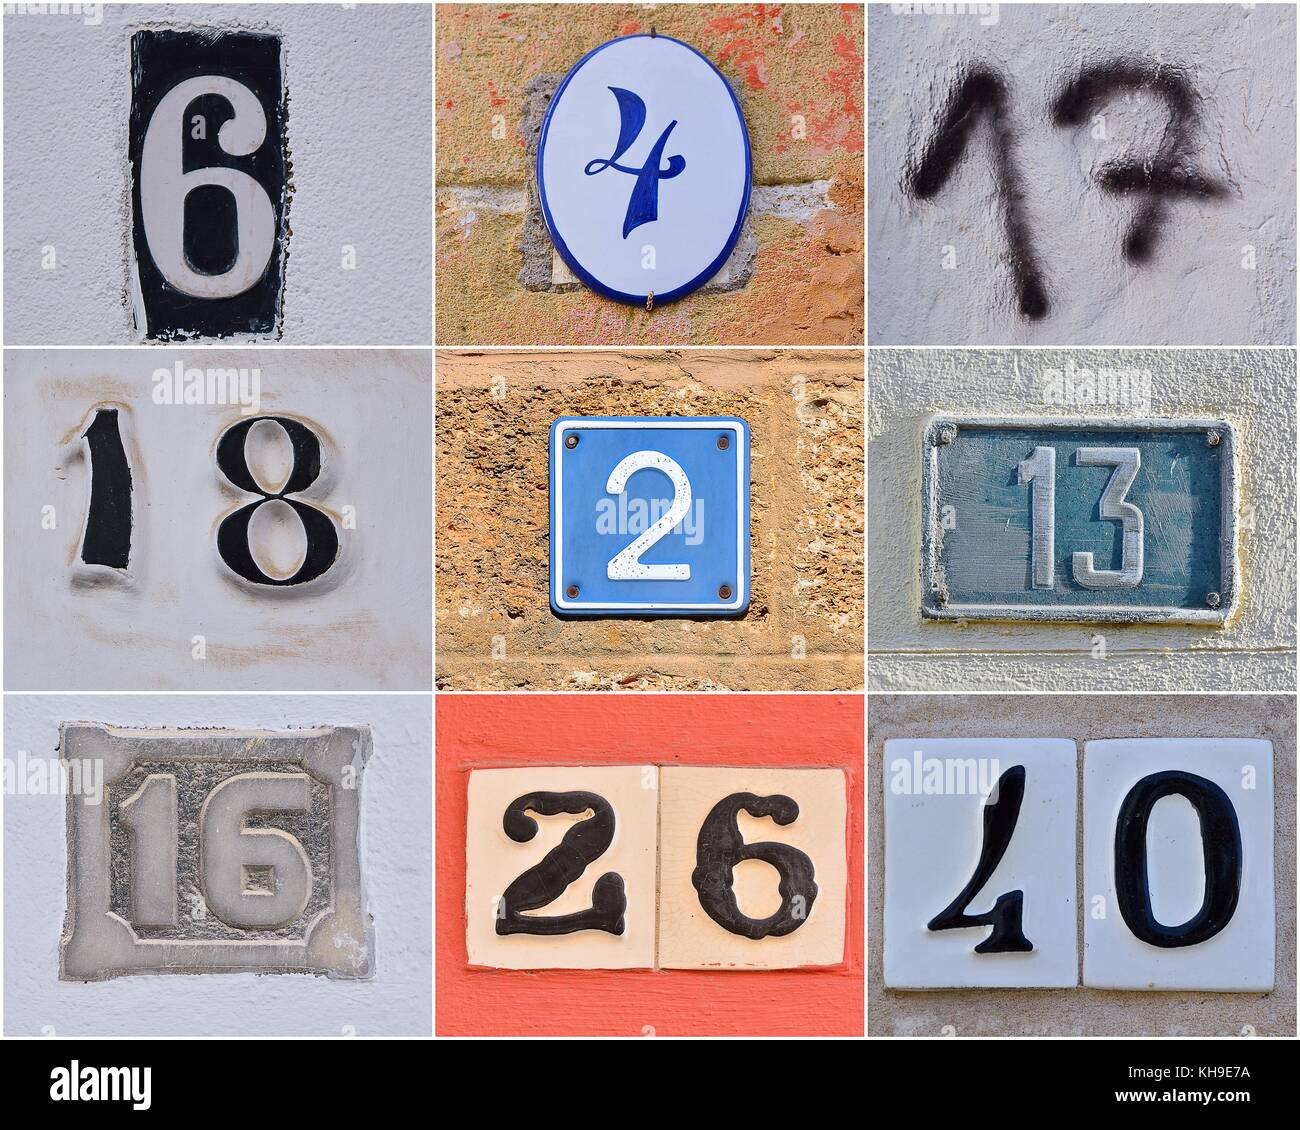 House numbers stock photos house numbers stock images alamy different house numbers on walls stock image dailygadgetfo Image collections